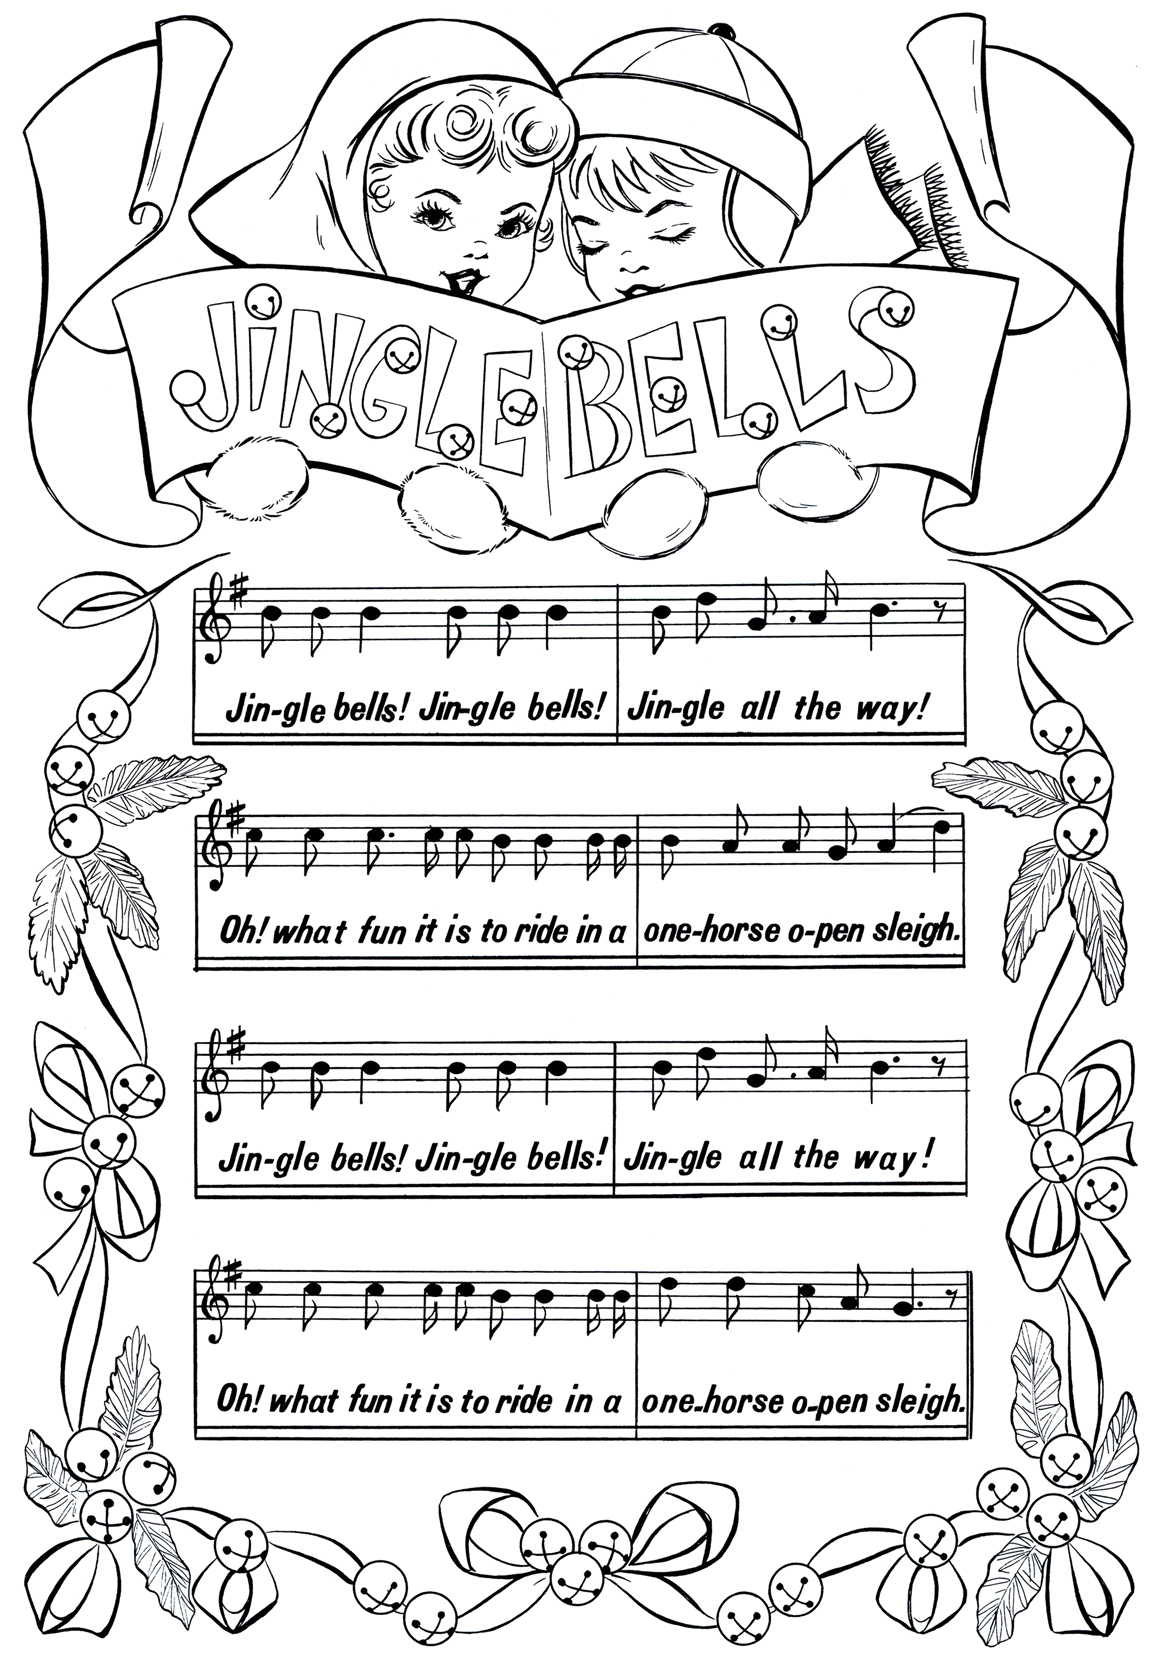 Jingle Bells Sheet Music GraphicsFairy moreover 15 best images about victorian christmas coloring pages on on free victorian christmas coloring pages along with nice coloring pages category for glittering christmas coloring on free victorian christmas coloring pages as well as coloring pages free victorian christmas coloring pages printable on free victorian christmas coloring pages further 25 best ideas about printable christmas coloring pages on on free victorian christmas coloring pages